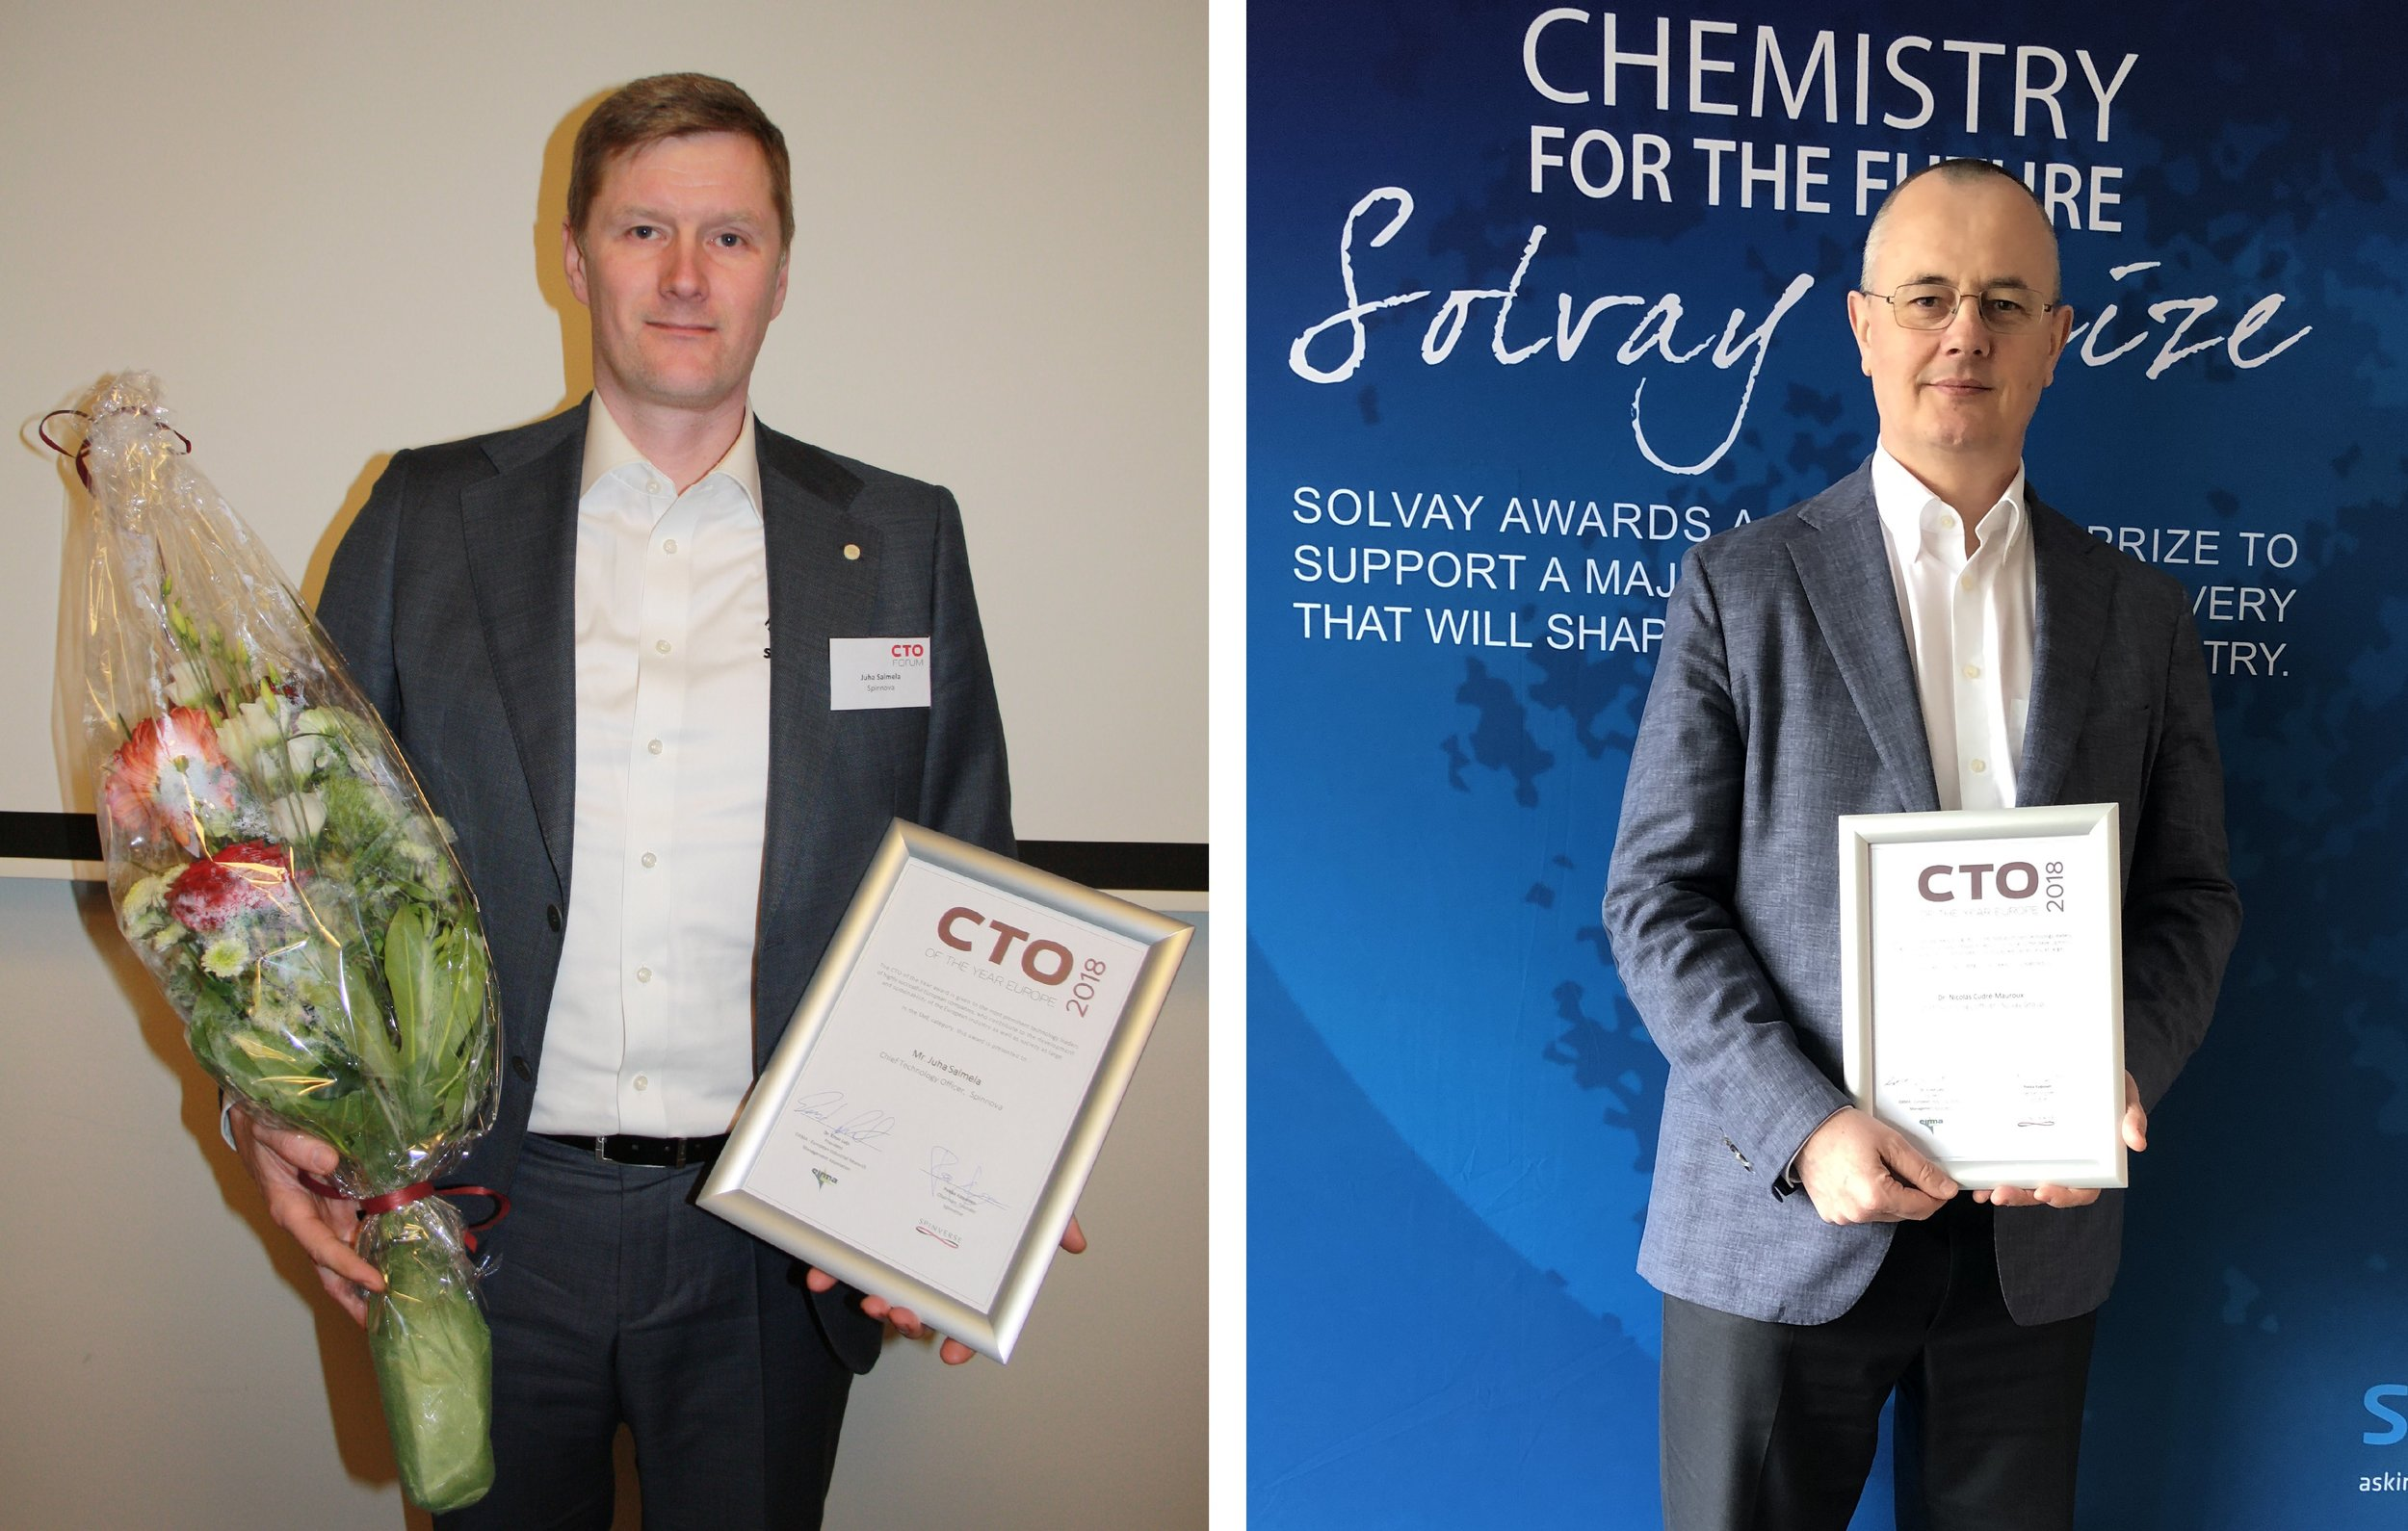 Juha Salmela (European CTO of the Year 2018, Spinnova) and Nicolas Cudré-Mauroux (European CTO of the Year 2018, Solvay)